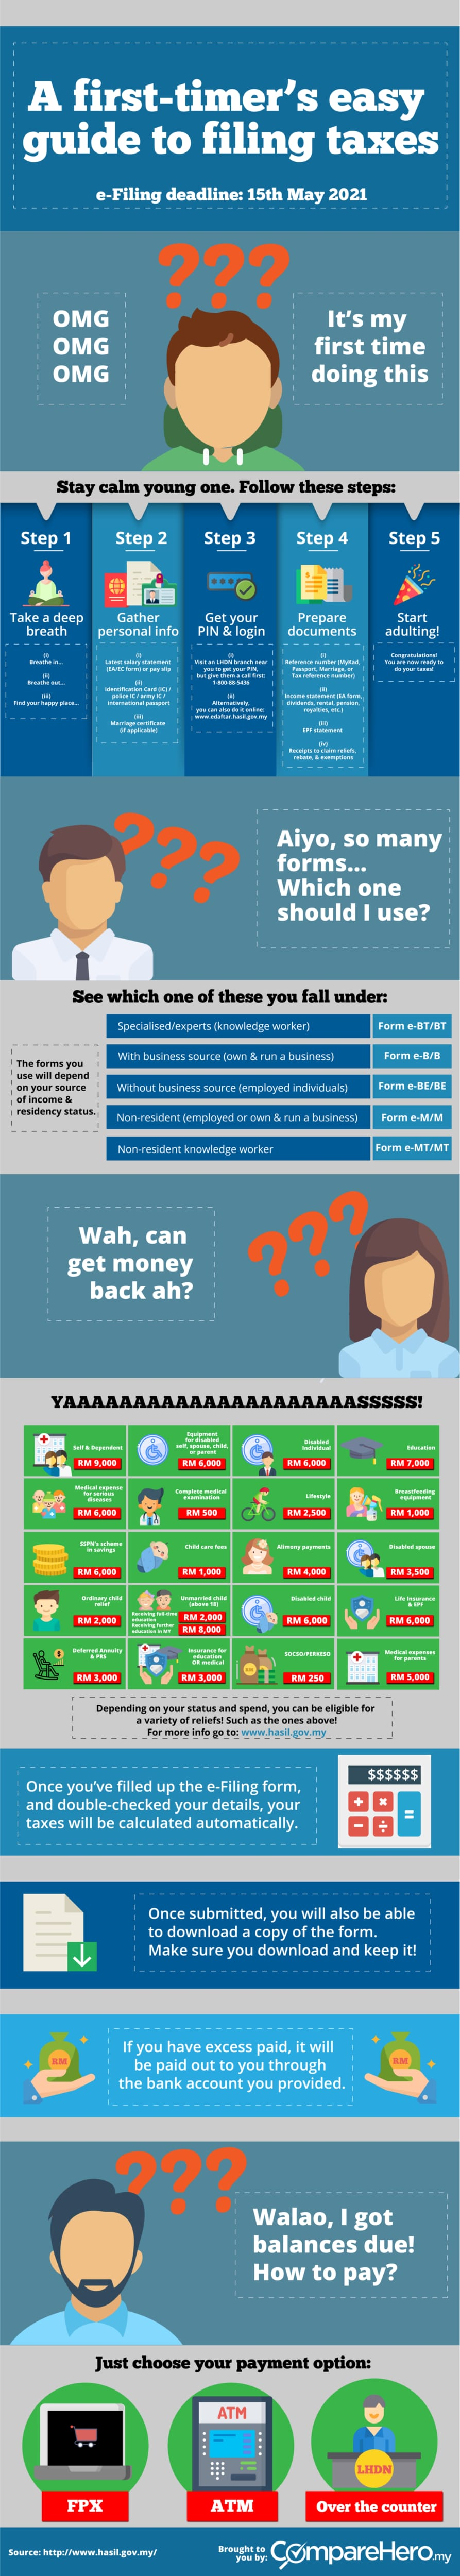 income-tax-guide-2021-infographic